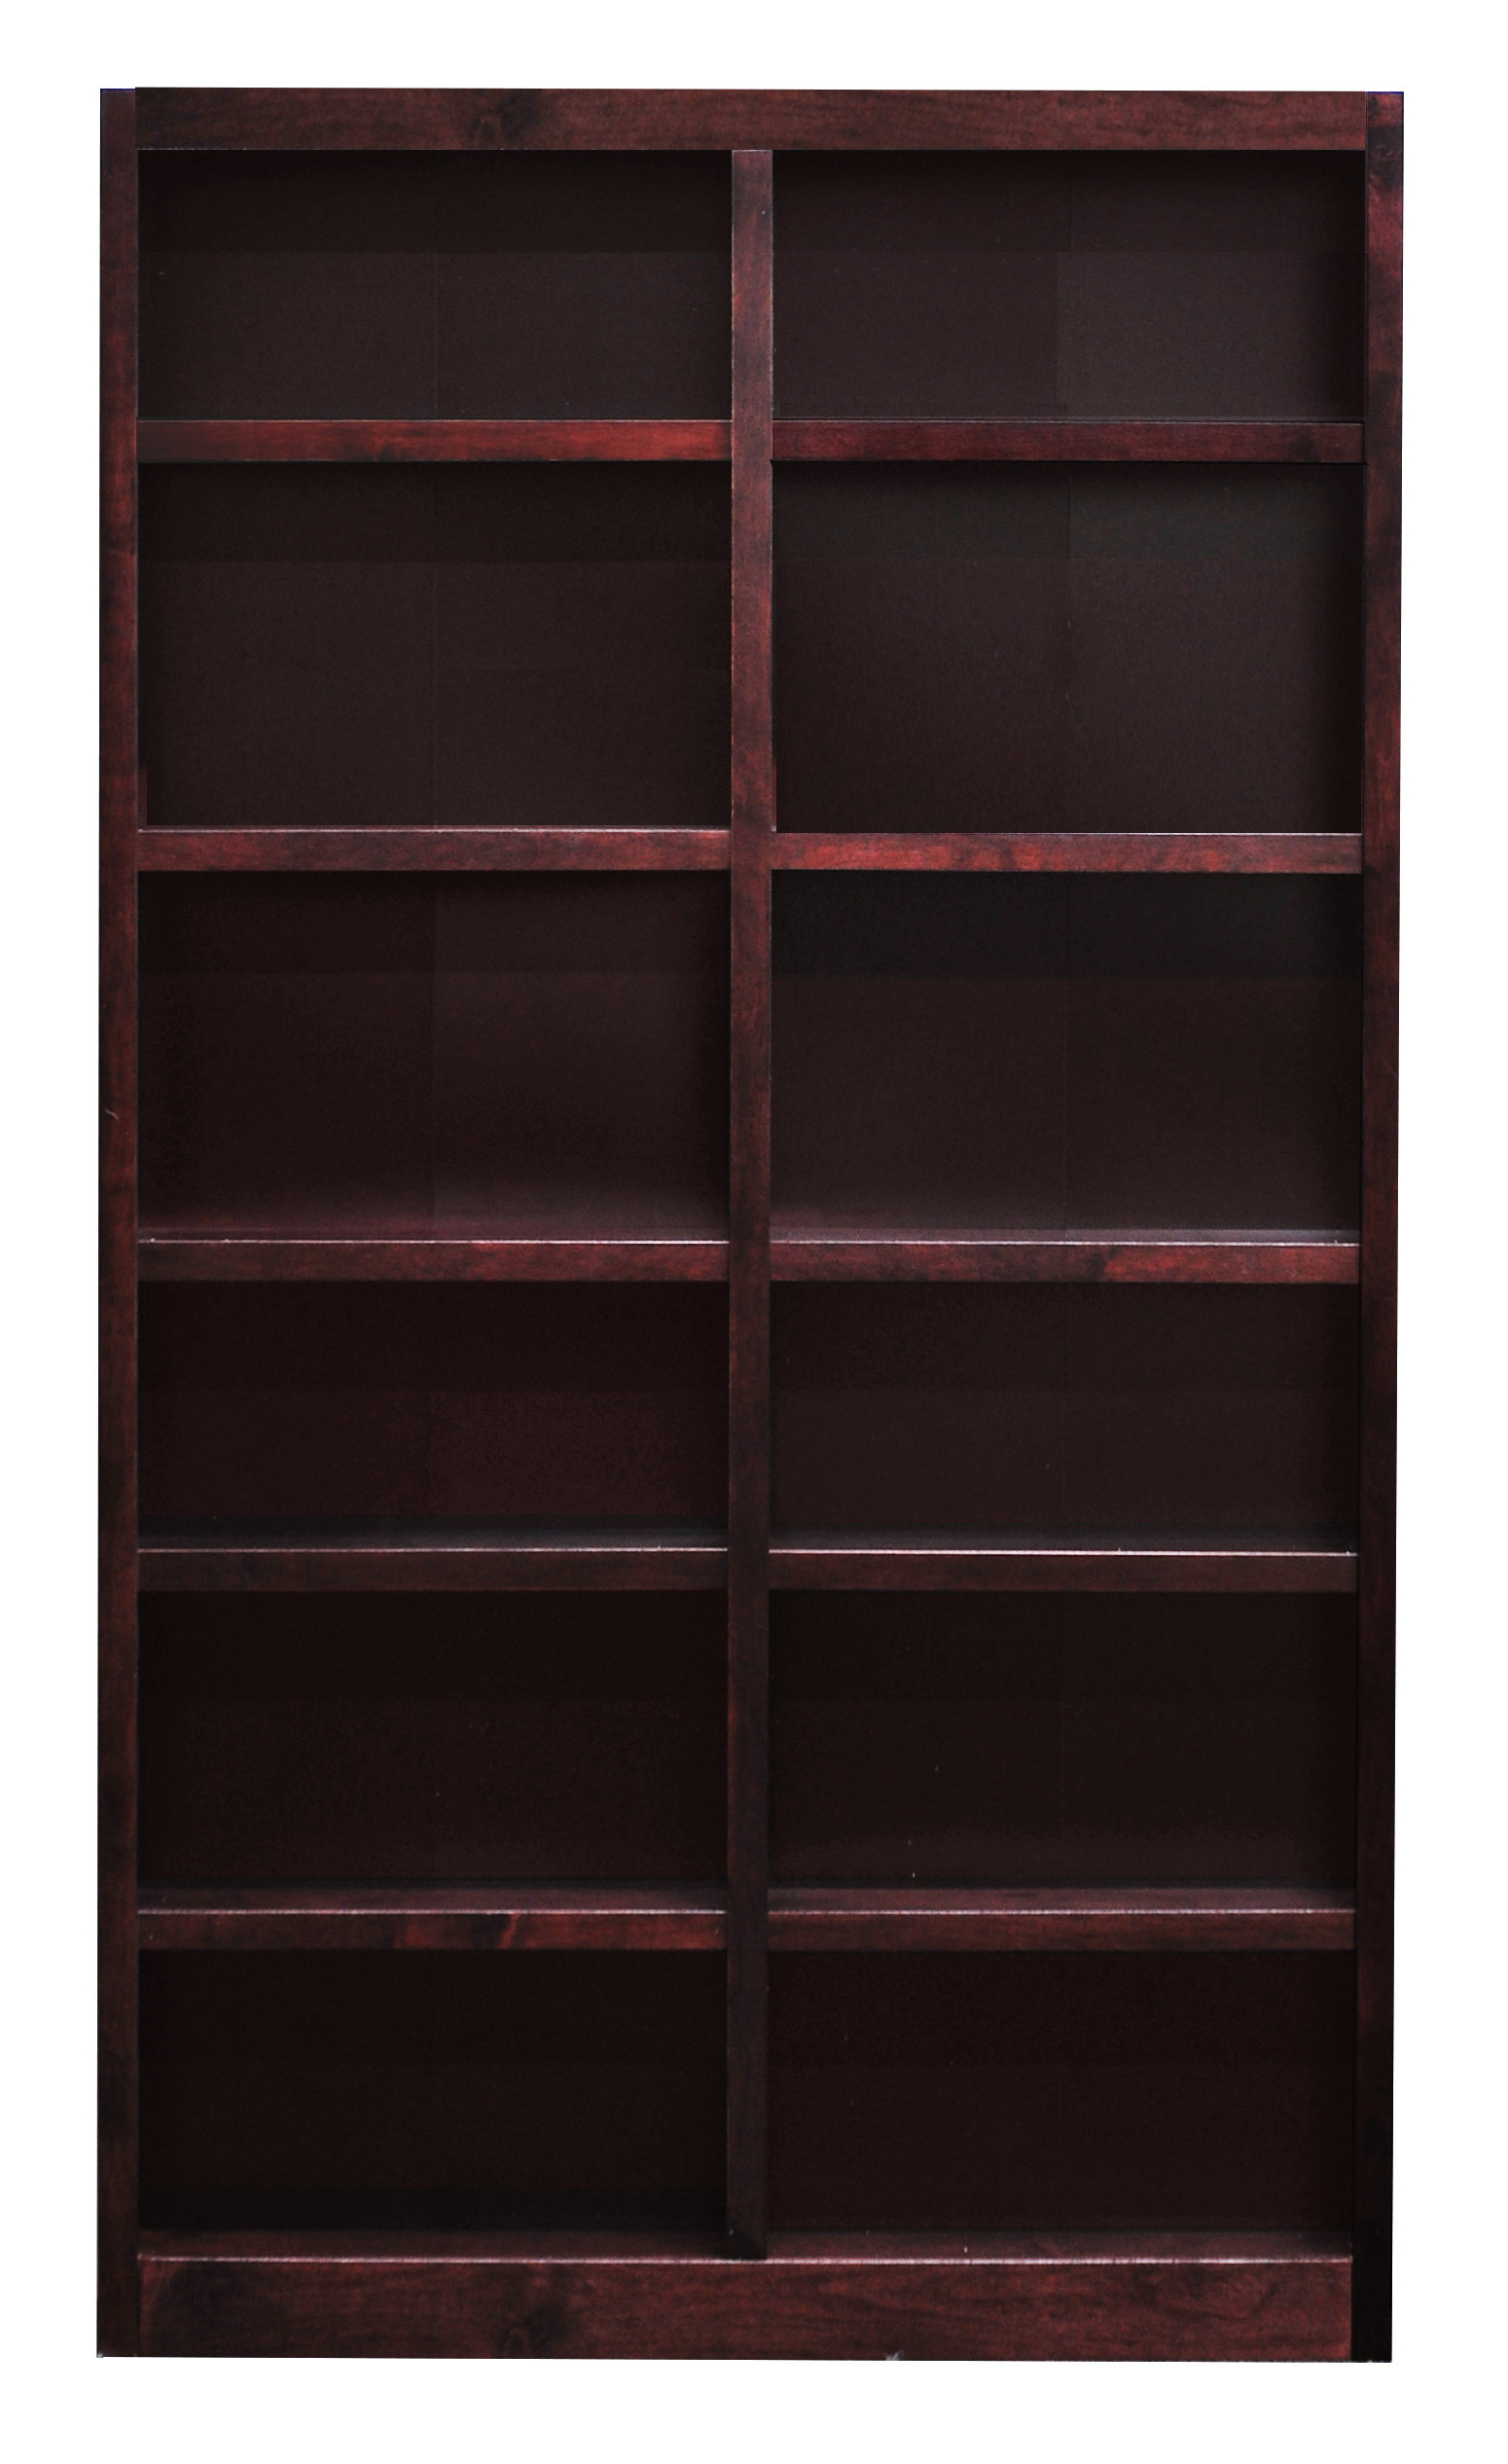 Favorite Farmhouse & Rustic Red Barrel Studio Bookcases & Bookshelves With Fuhrmann Corner Bookcases (View 3 of 20)